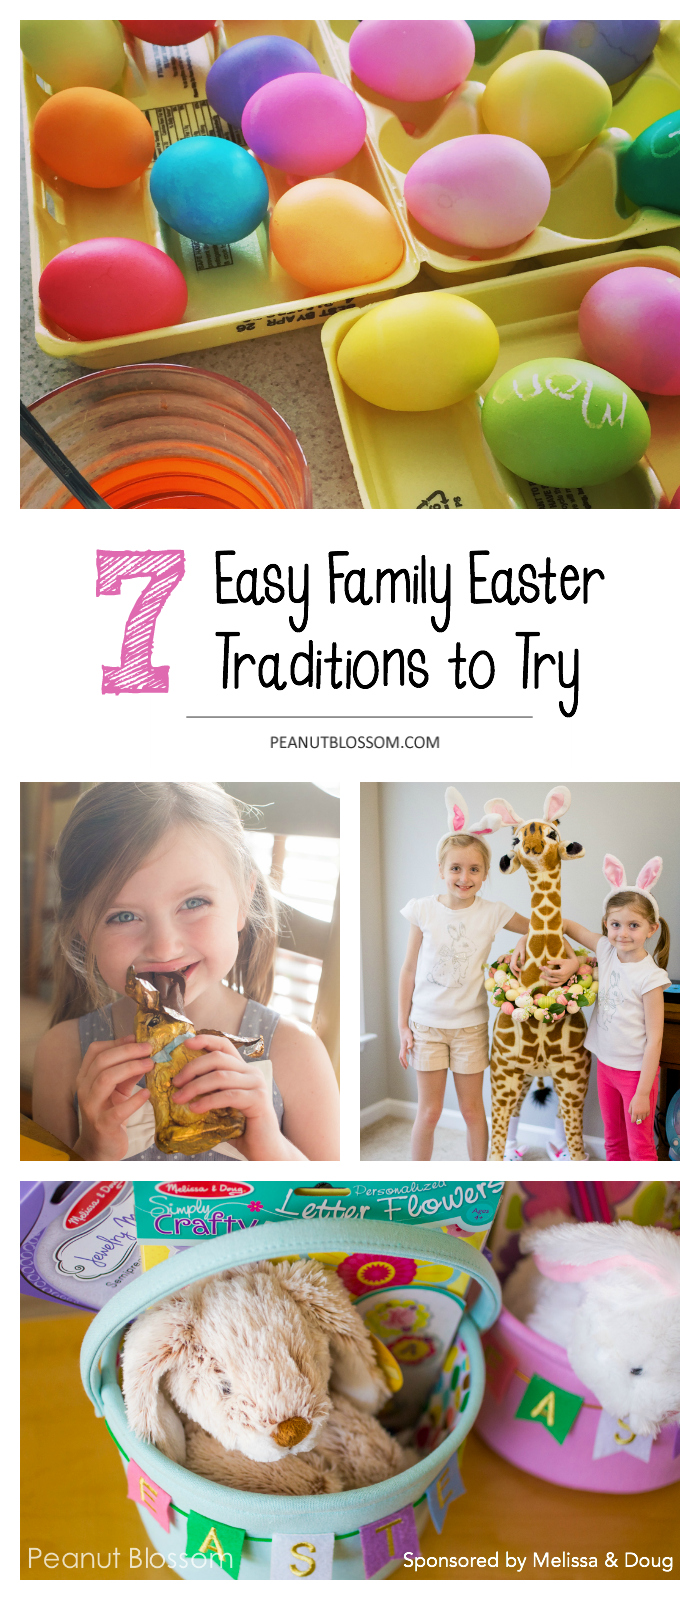 7 fun Easter ideas that you'll want for annual traditions. Love these sweet and simple Easter ideas. What a great way to make the holiday memorable for the kids. #easterideas #eastertraditions #easterbaskets